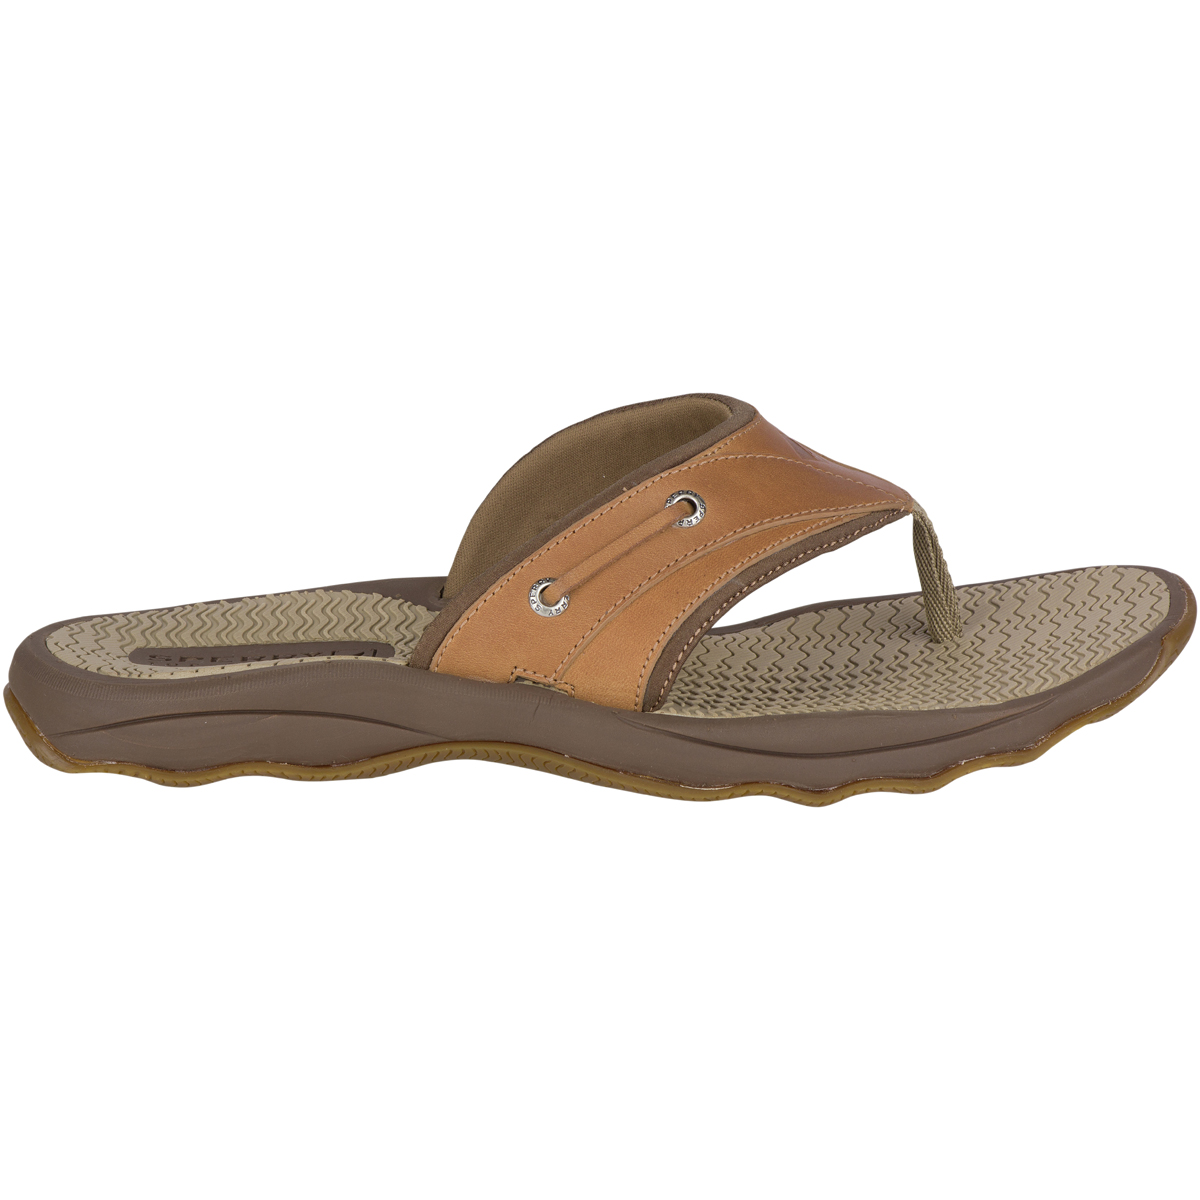 Sperry Outer Banks Thong - Tan (STS18177)